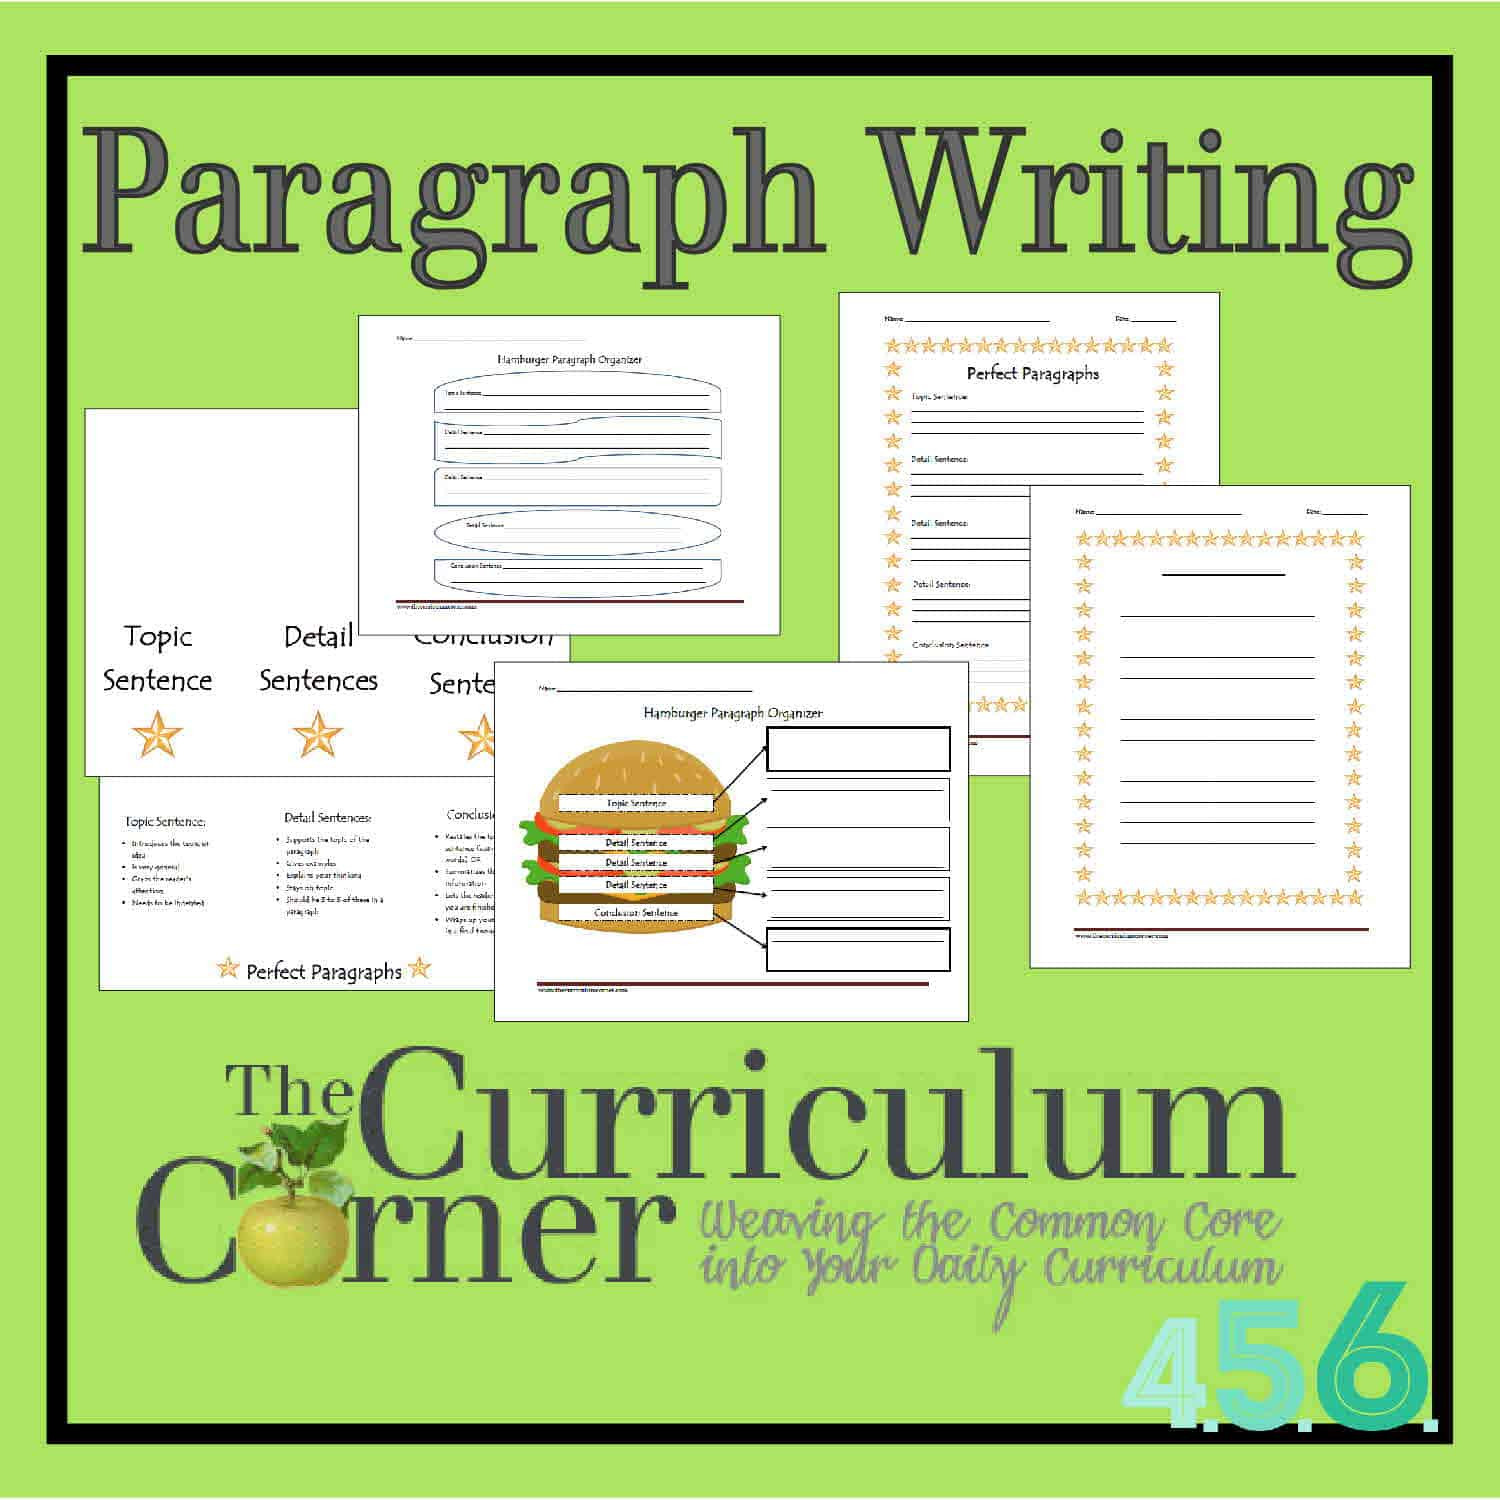 Teaching Paragraph Writing Worksheets Paragraph Writing the Curriculum Corner 4 5 6